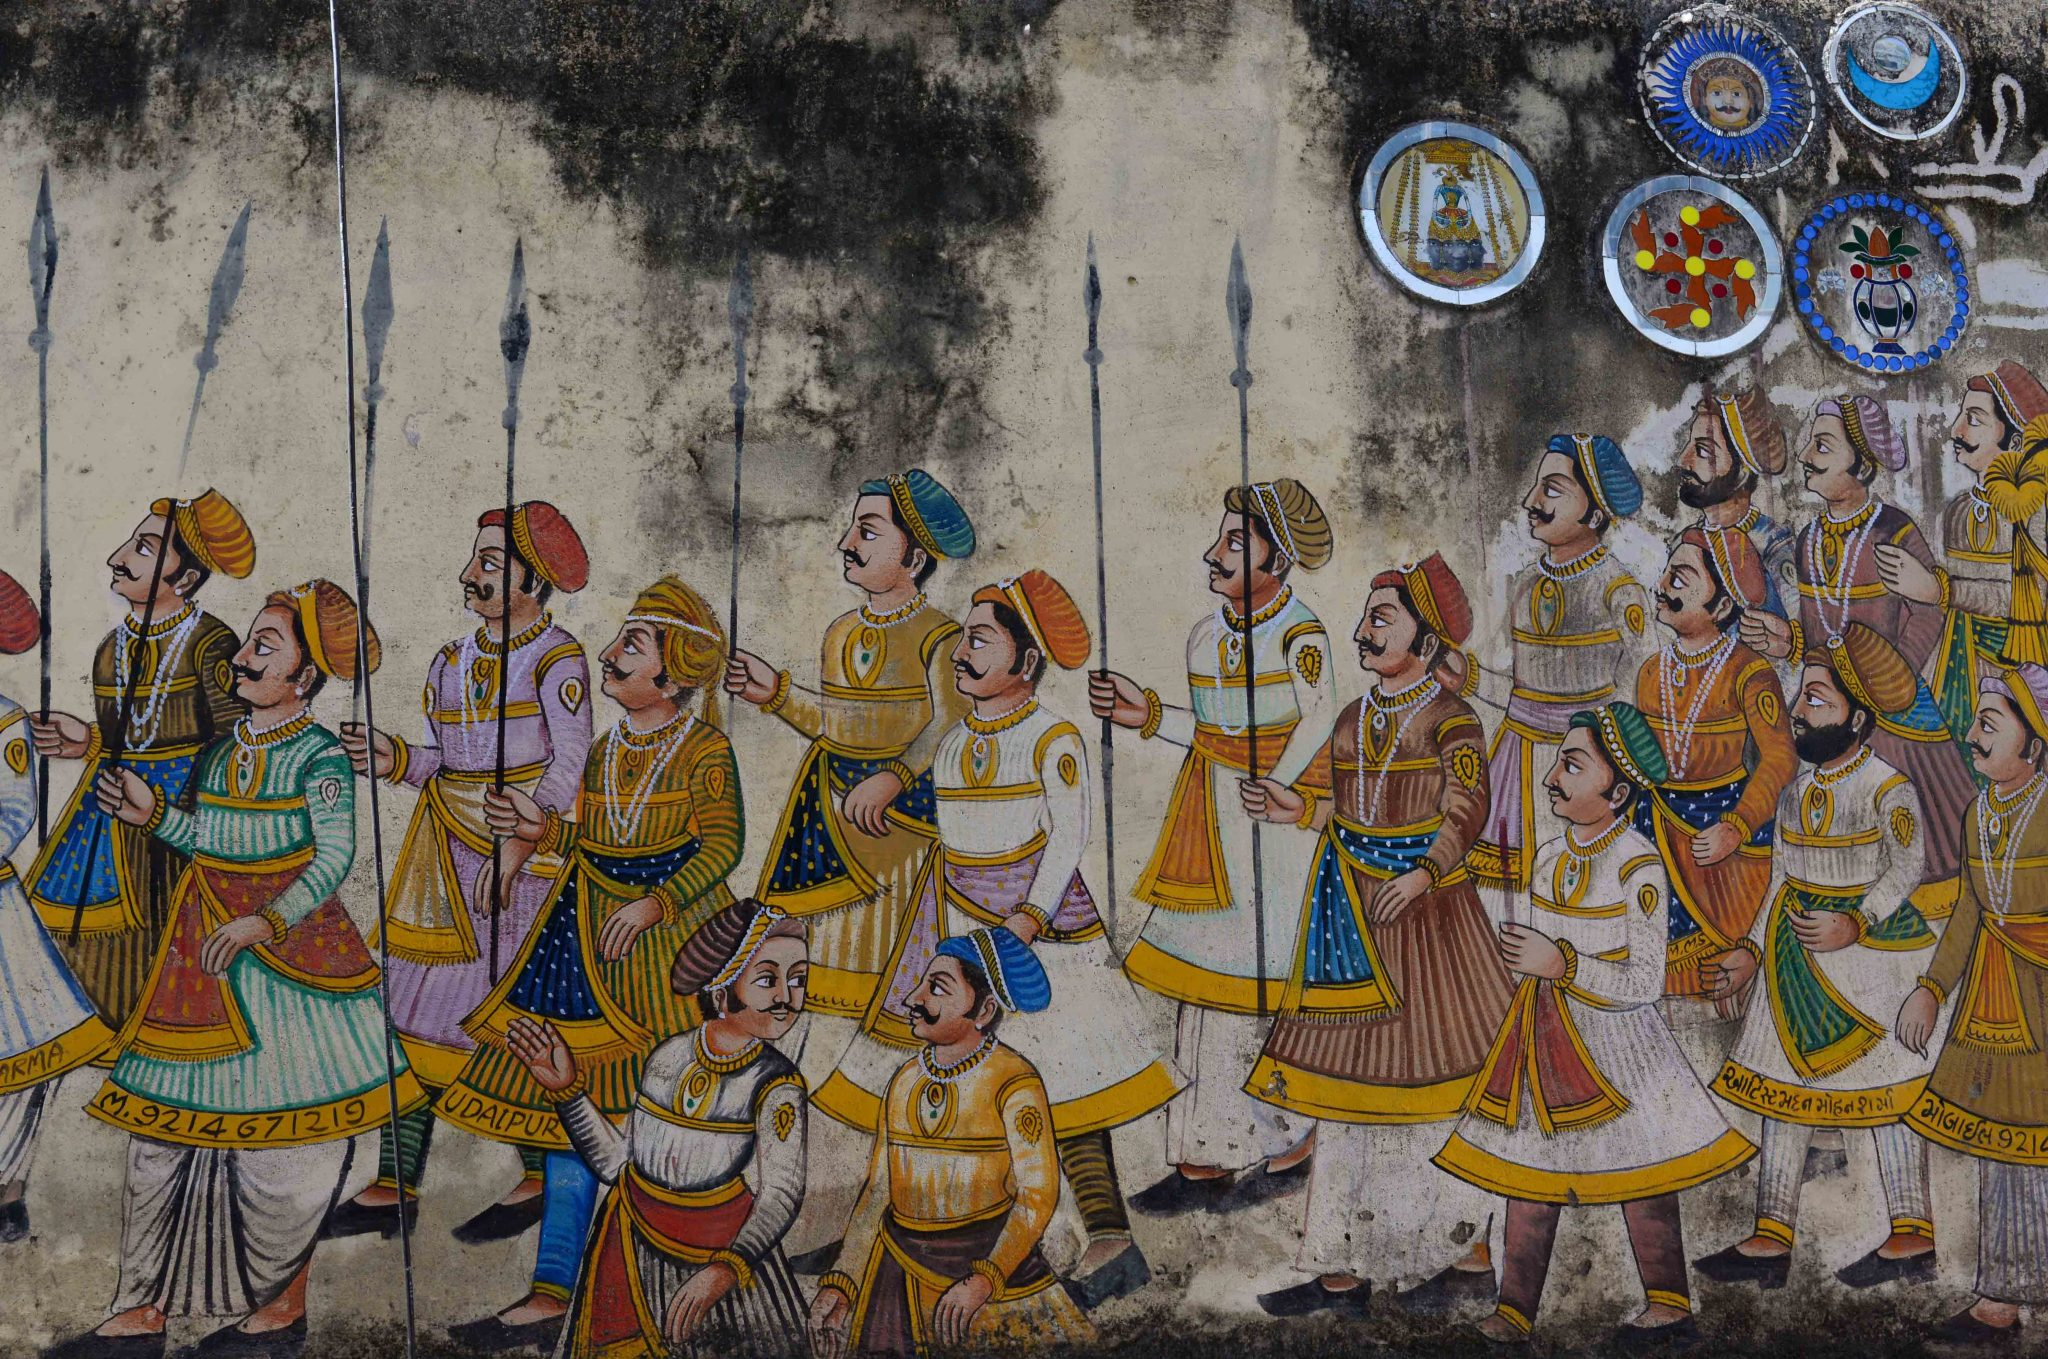 Mural in Udaipur